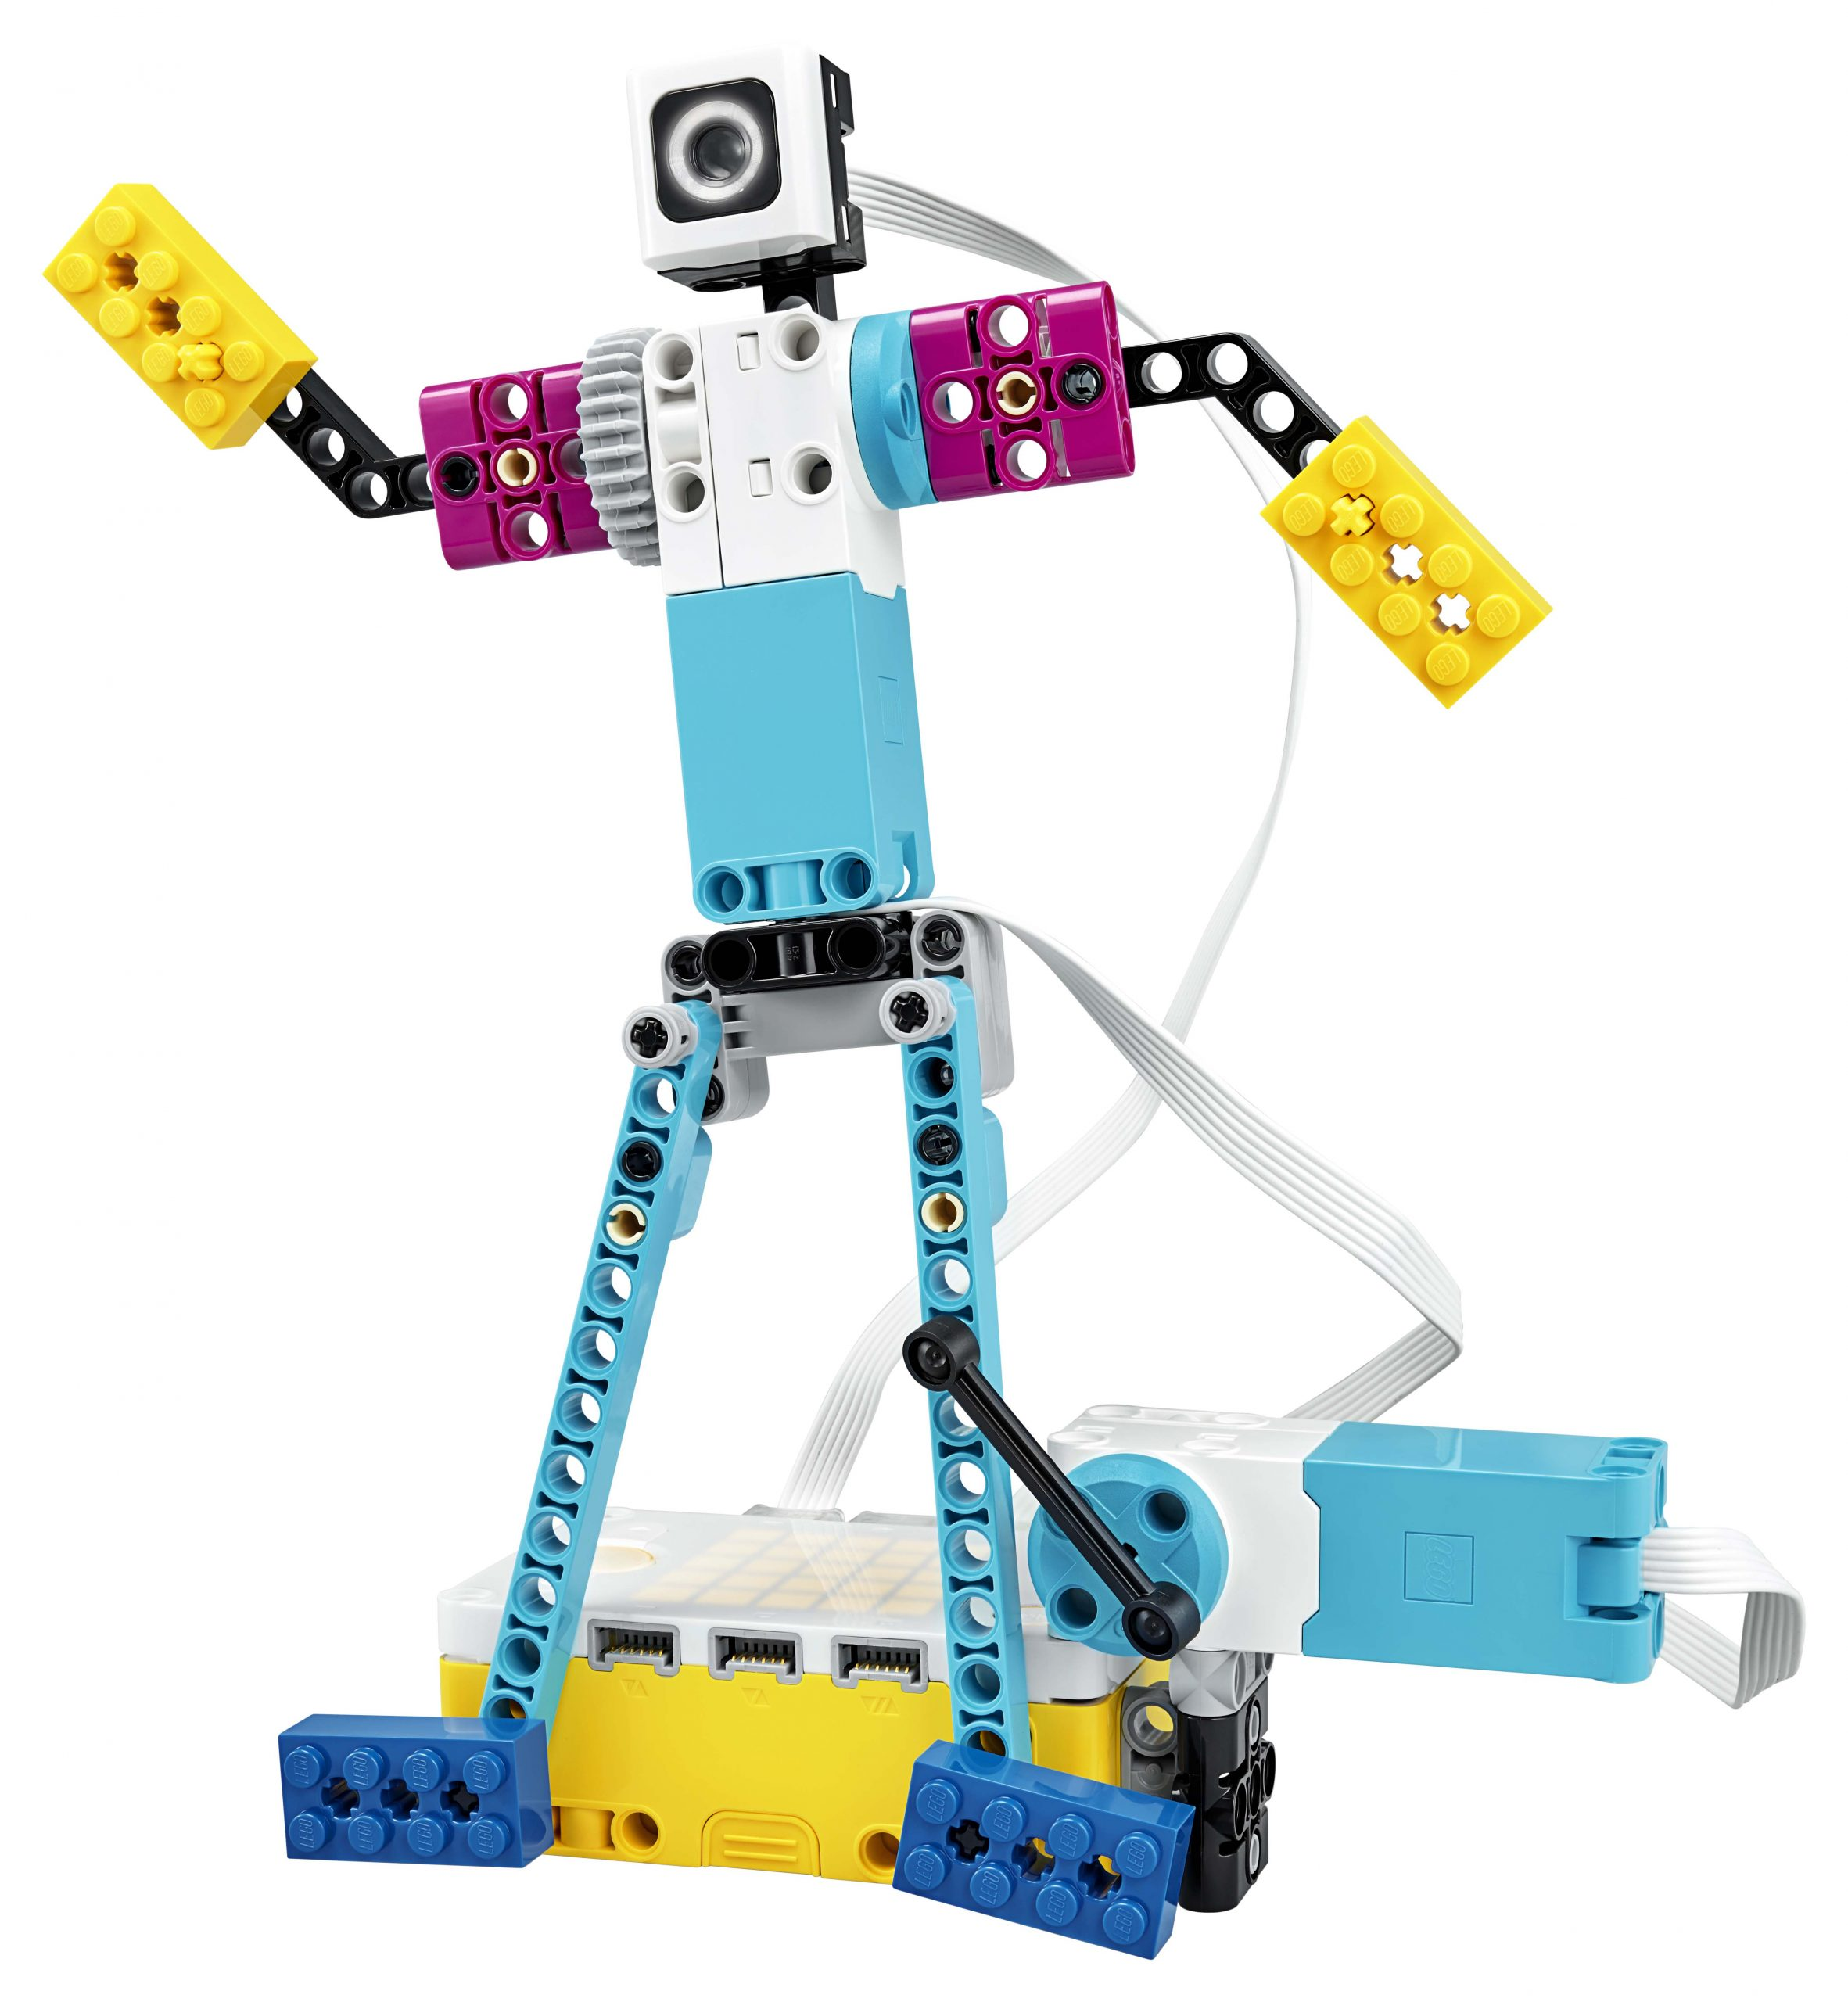 LEGO Education Launches SPIKE Prime - The Brick Fan